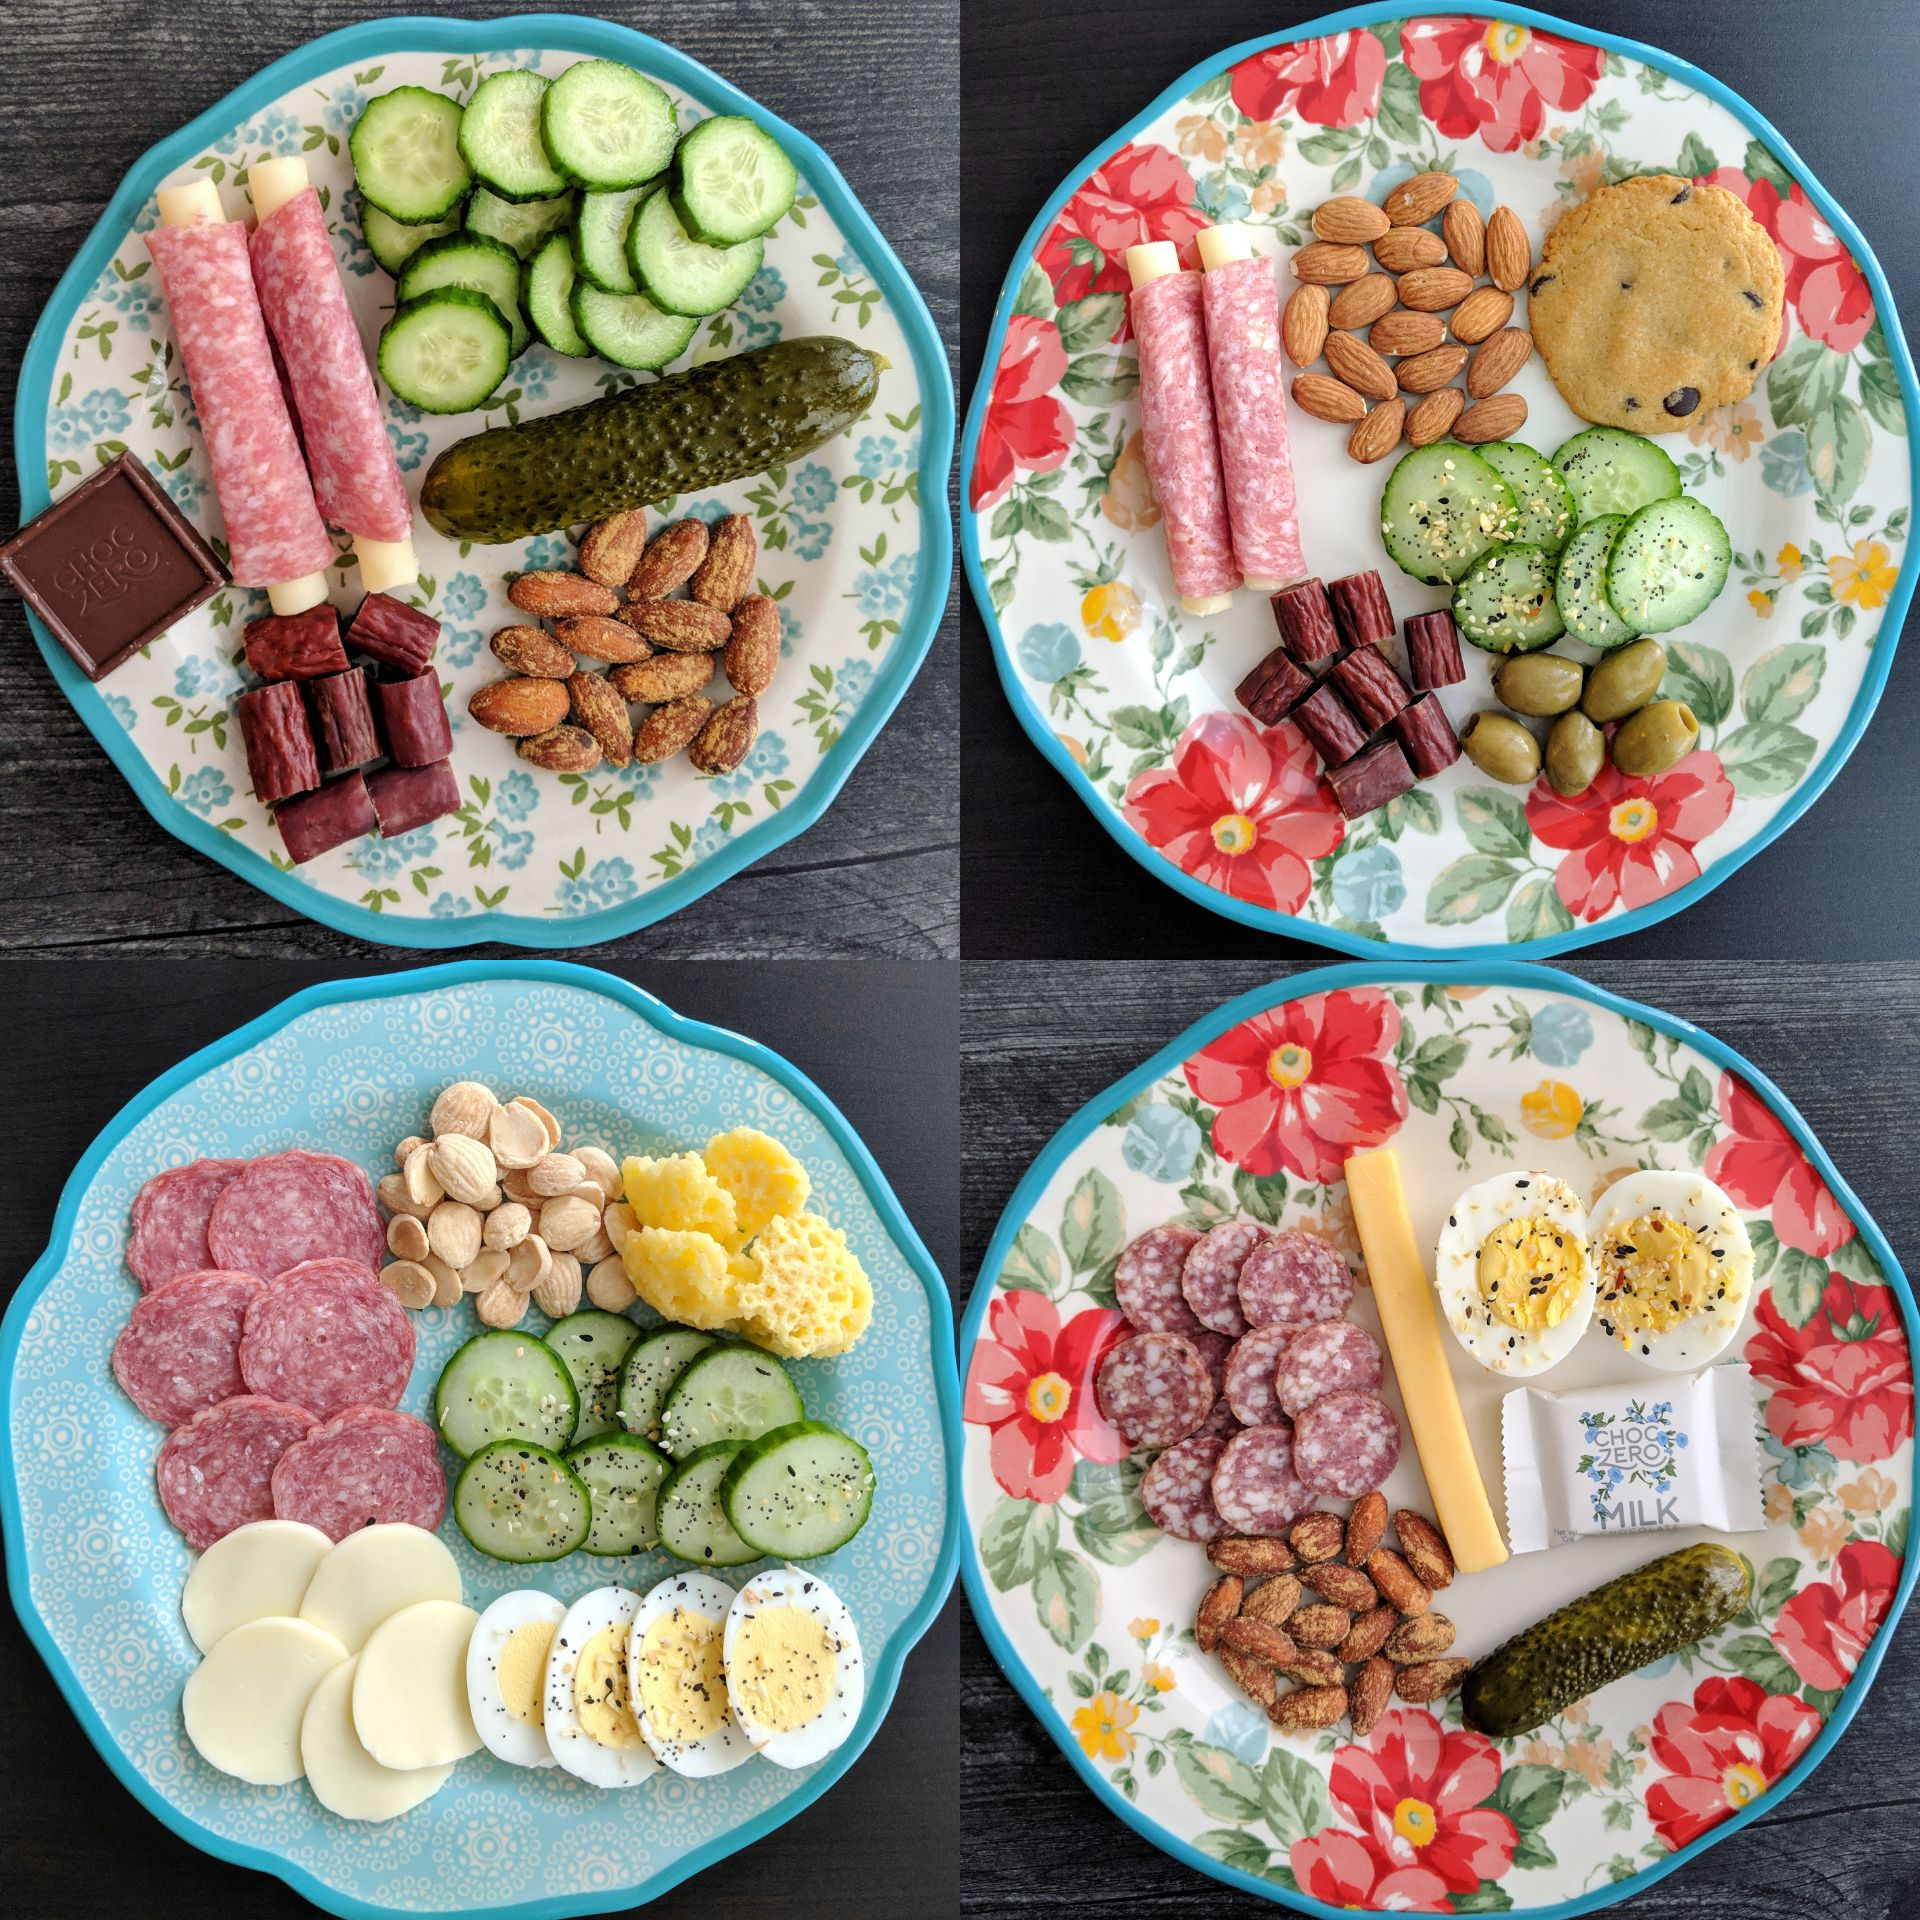 Keto Friendly Snack Plates 1 Healthy Protein Snacks Healthy Afternoon Snacks Keto Snacks